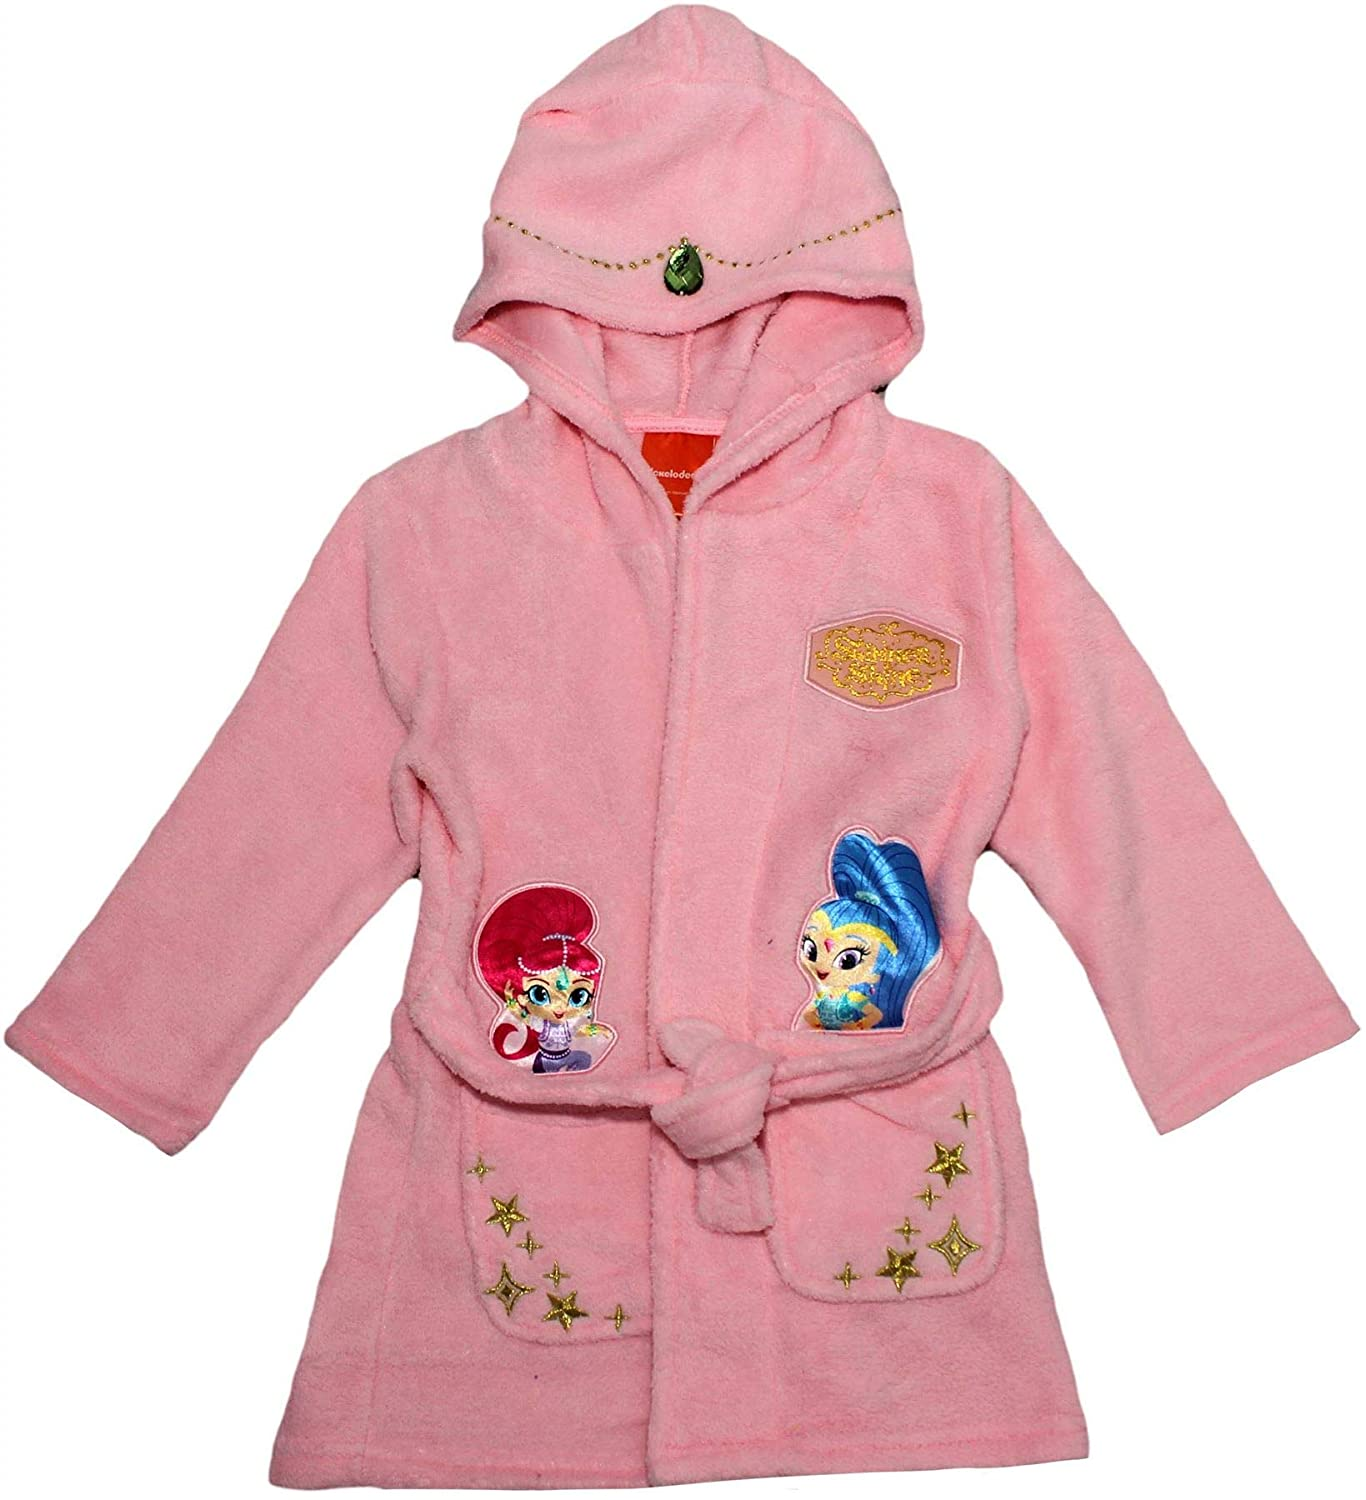 Nickelodeon Girl's Shimmer and Shine Dressing Gown RH2224